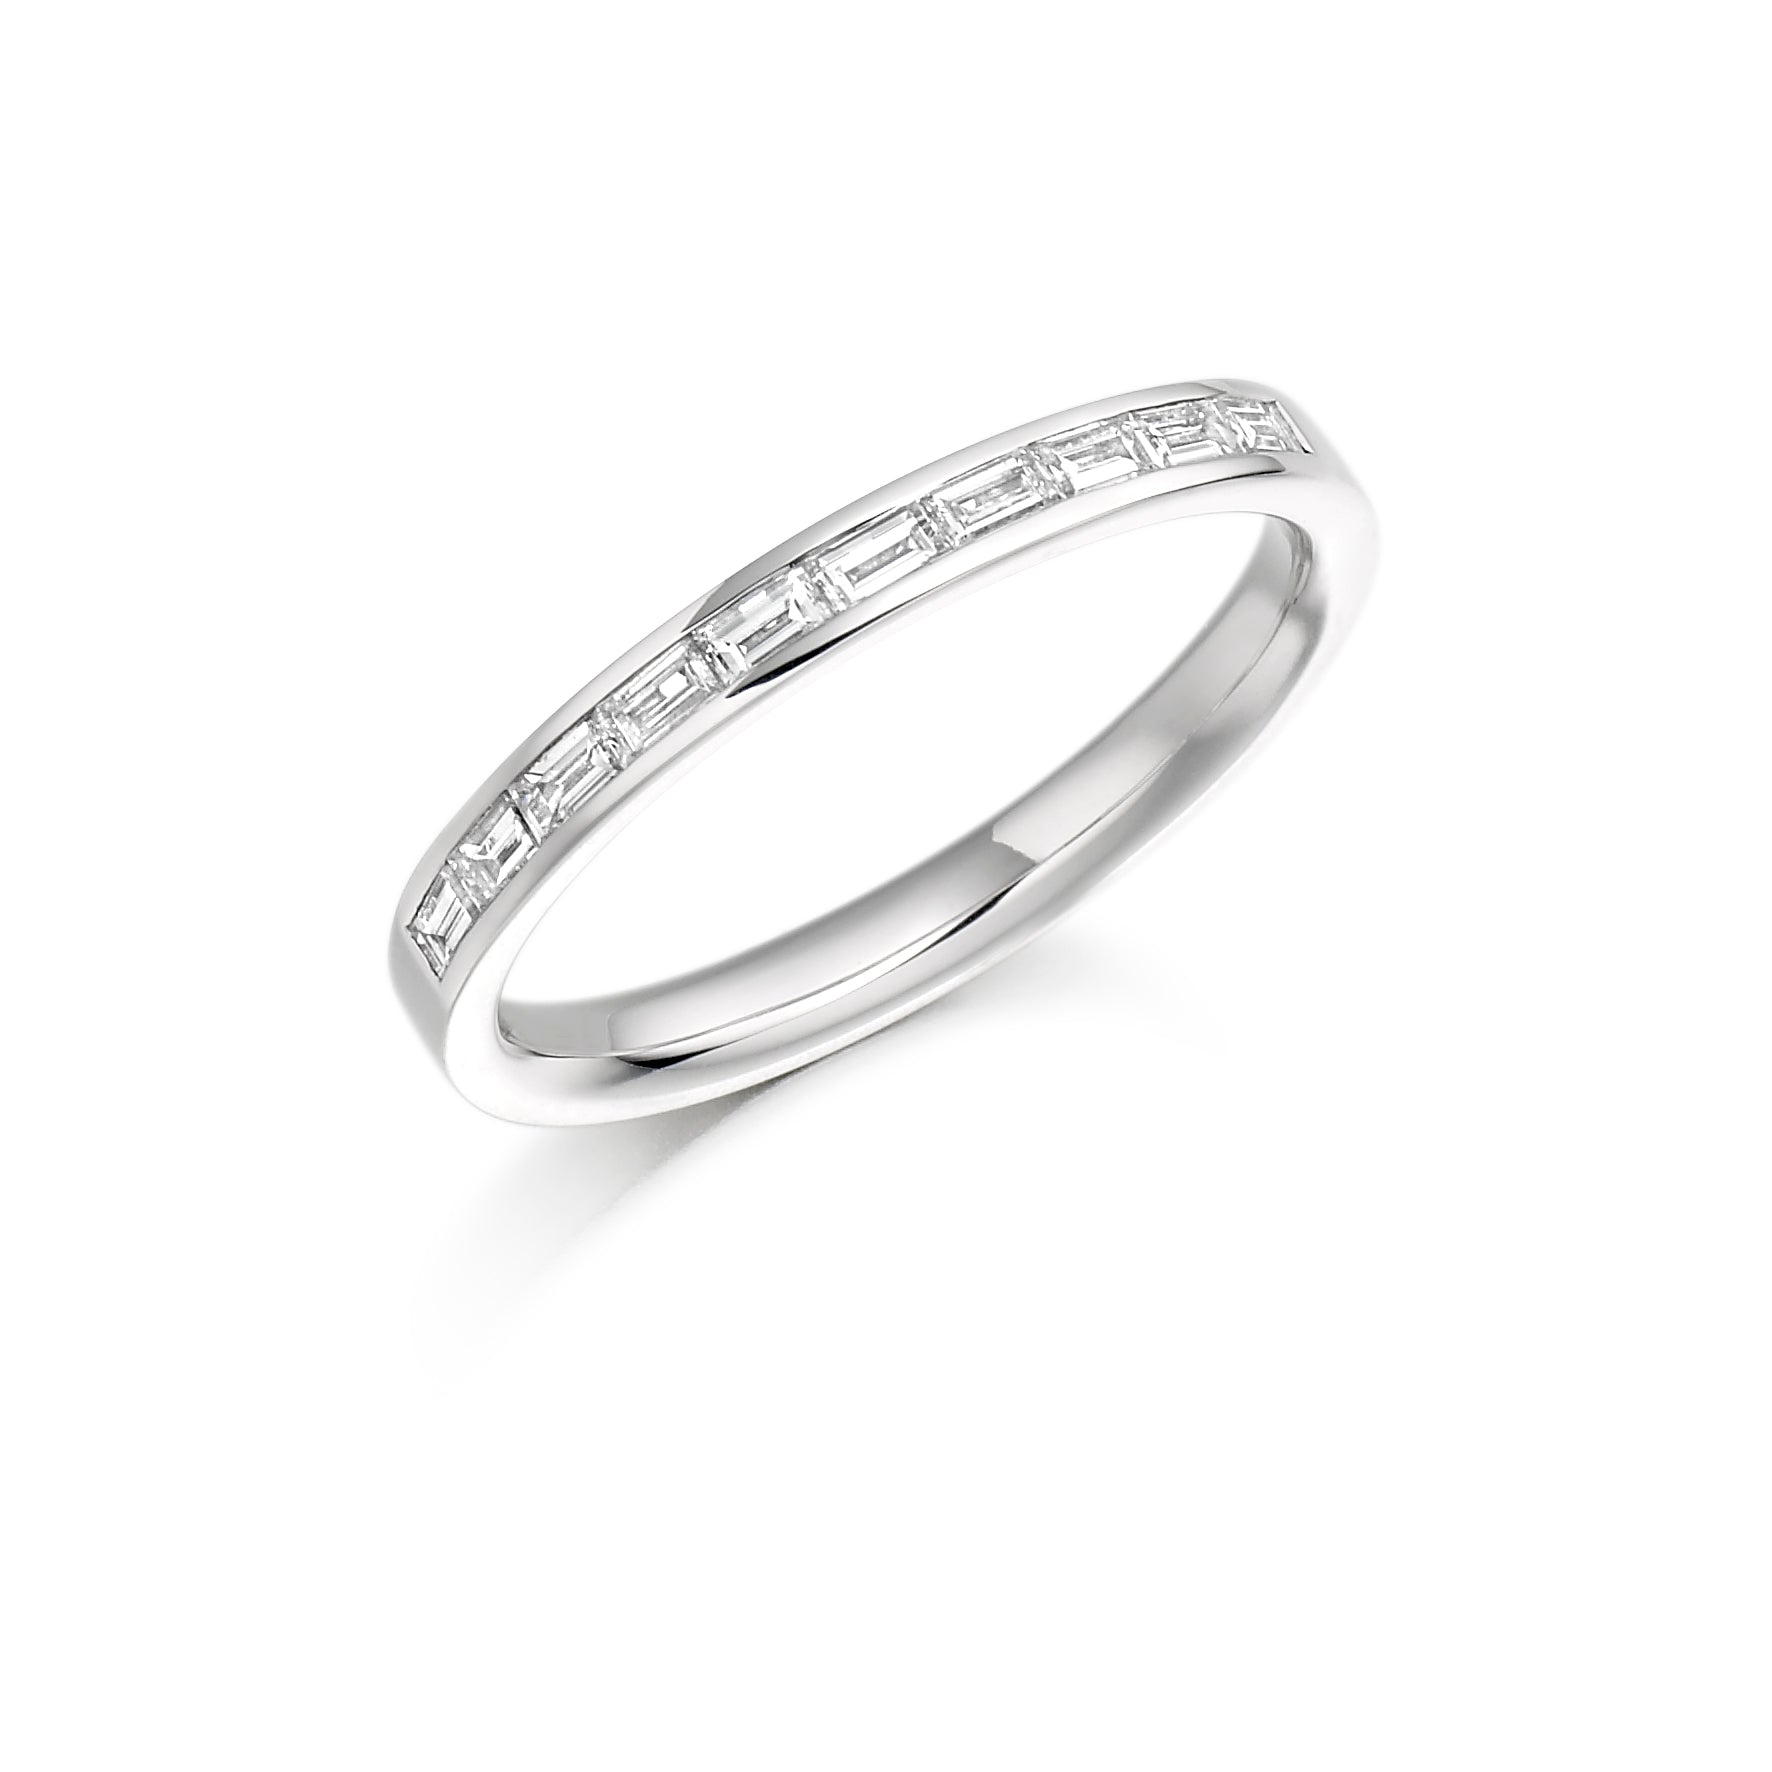 0.30ct Baguette Cut Diamond Channel Set Wedding Ring - (Home Try-On)